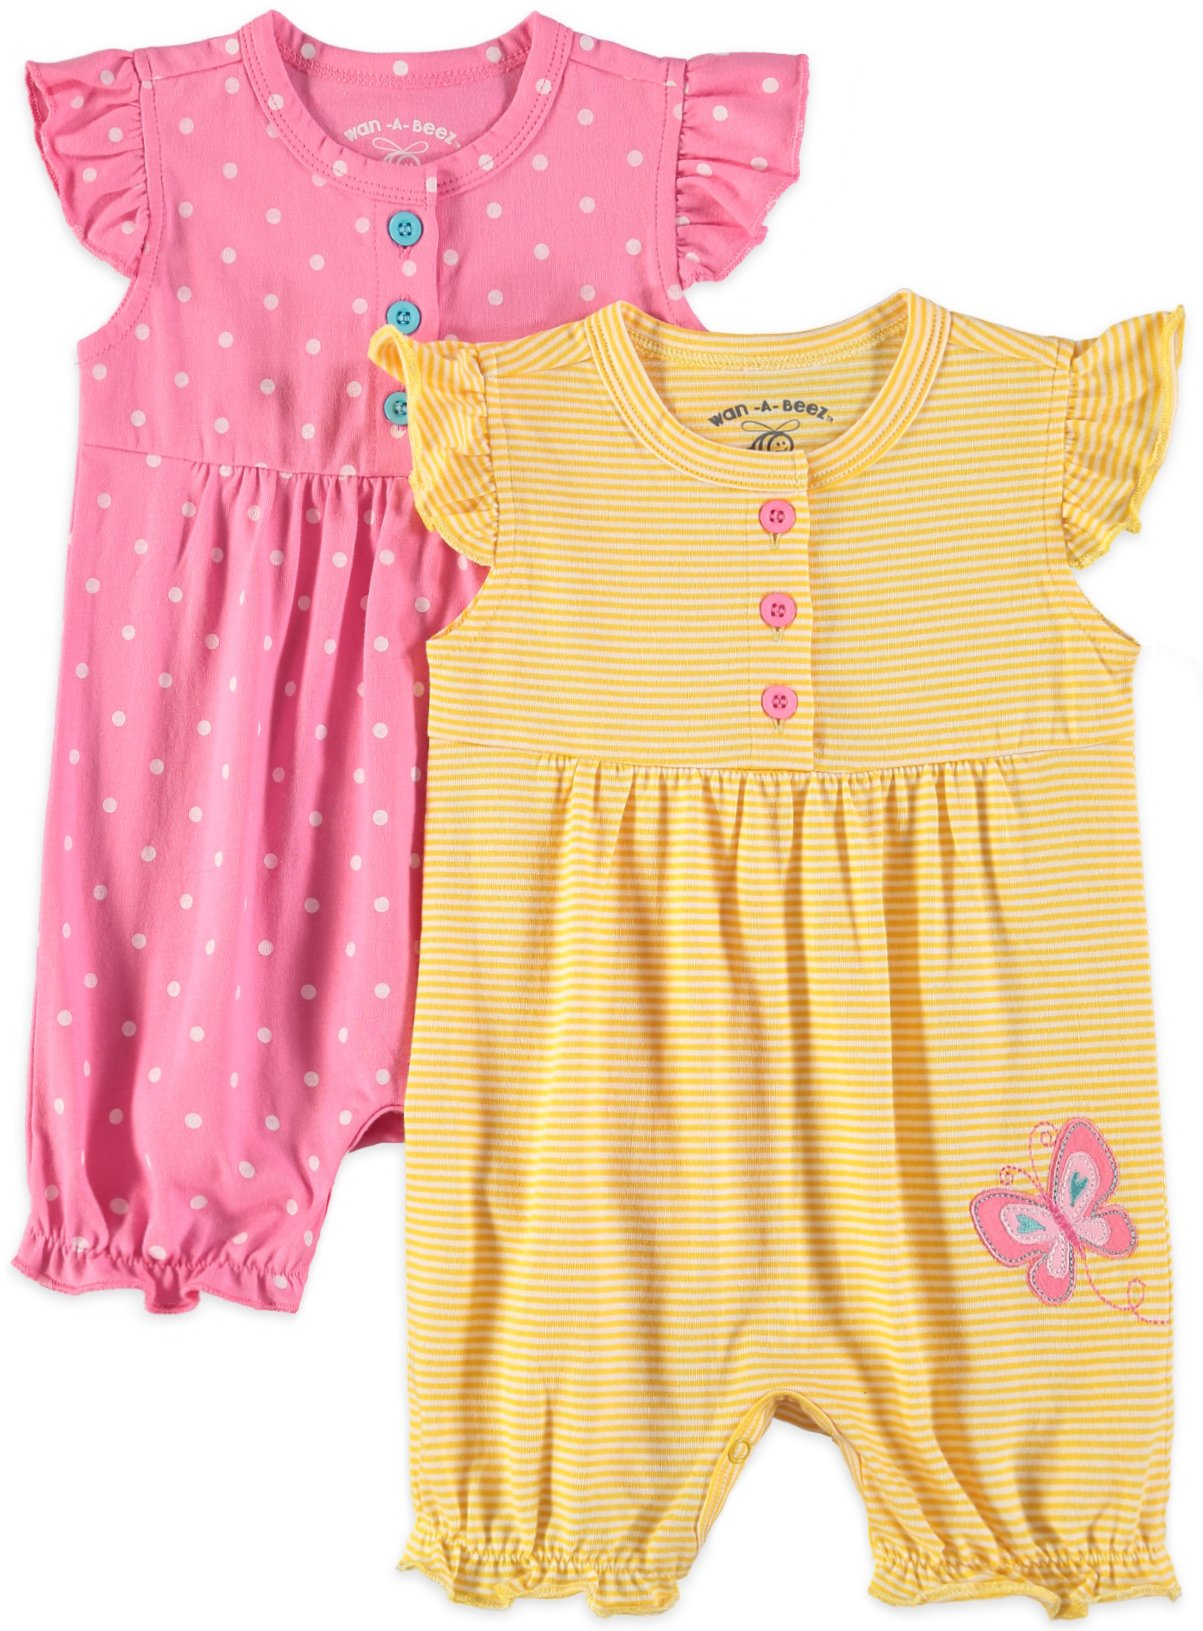 Wan-A-Beez Baby Boys' 2 Pack Graphic Short Sleeve Romper (12 Months, Pink Butterfly)